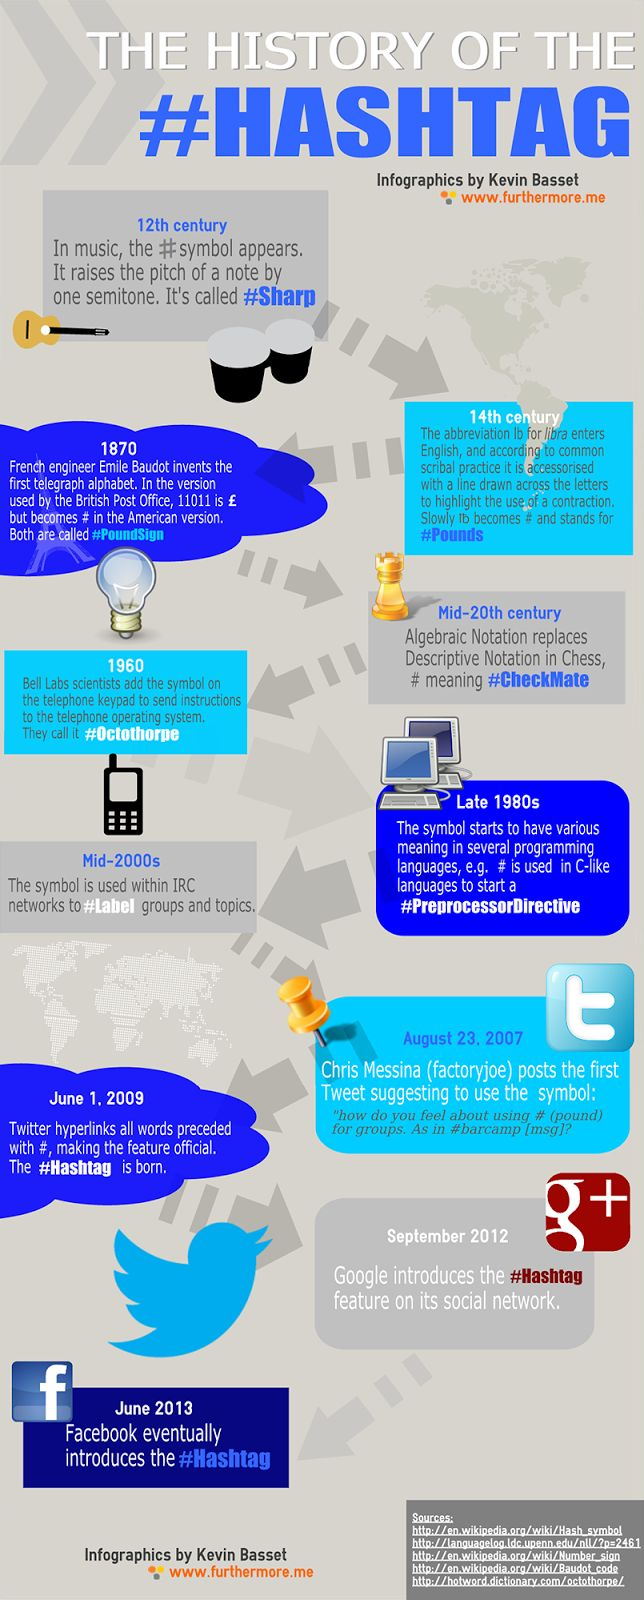 The History of the #Hashtag: Tech and history, could there be a better combo? #twitter #facebook